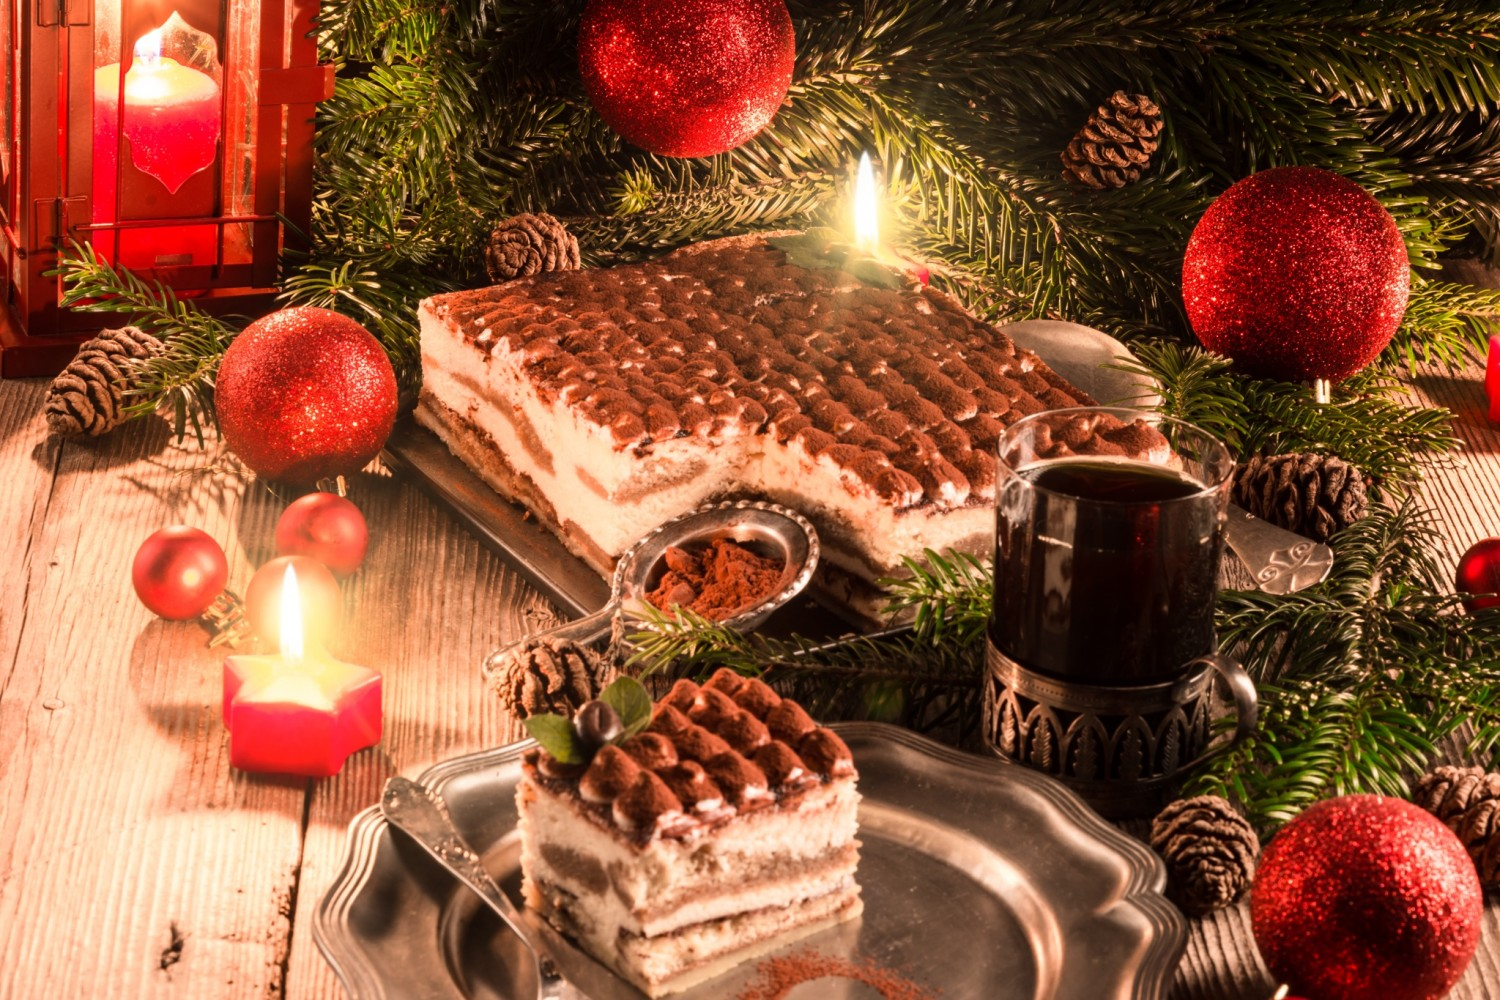 Weekly Contest: Share Your Festive Food Photos and Enter to Win a Set of Camera-Themed Ice Cube Trays